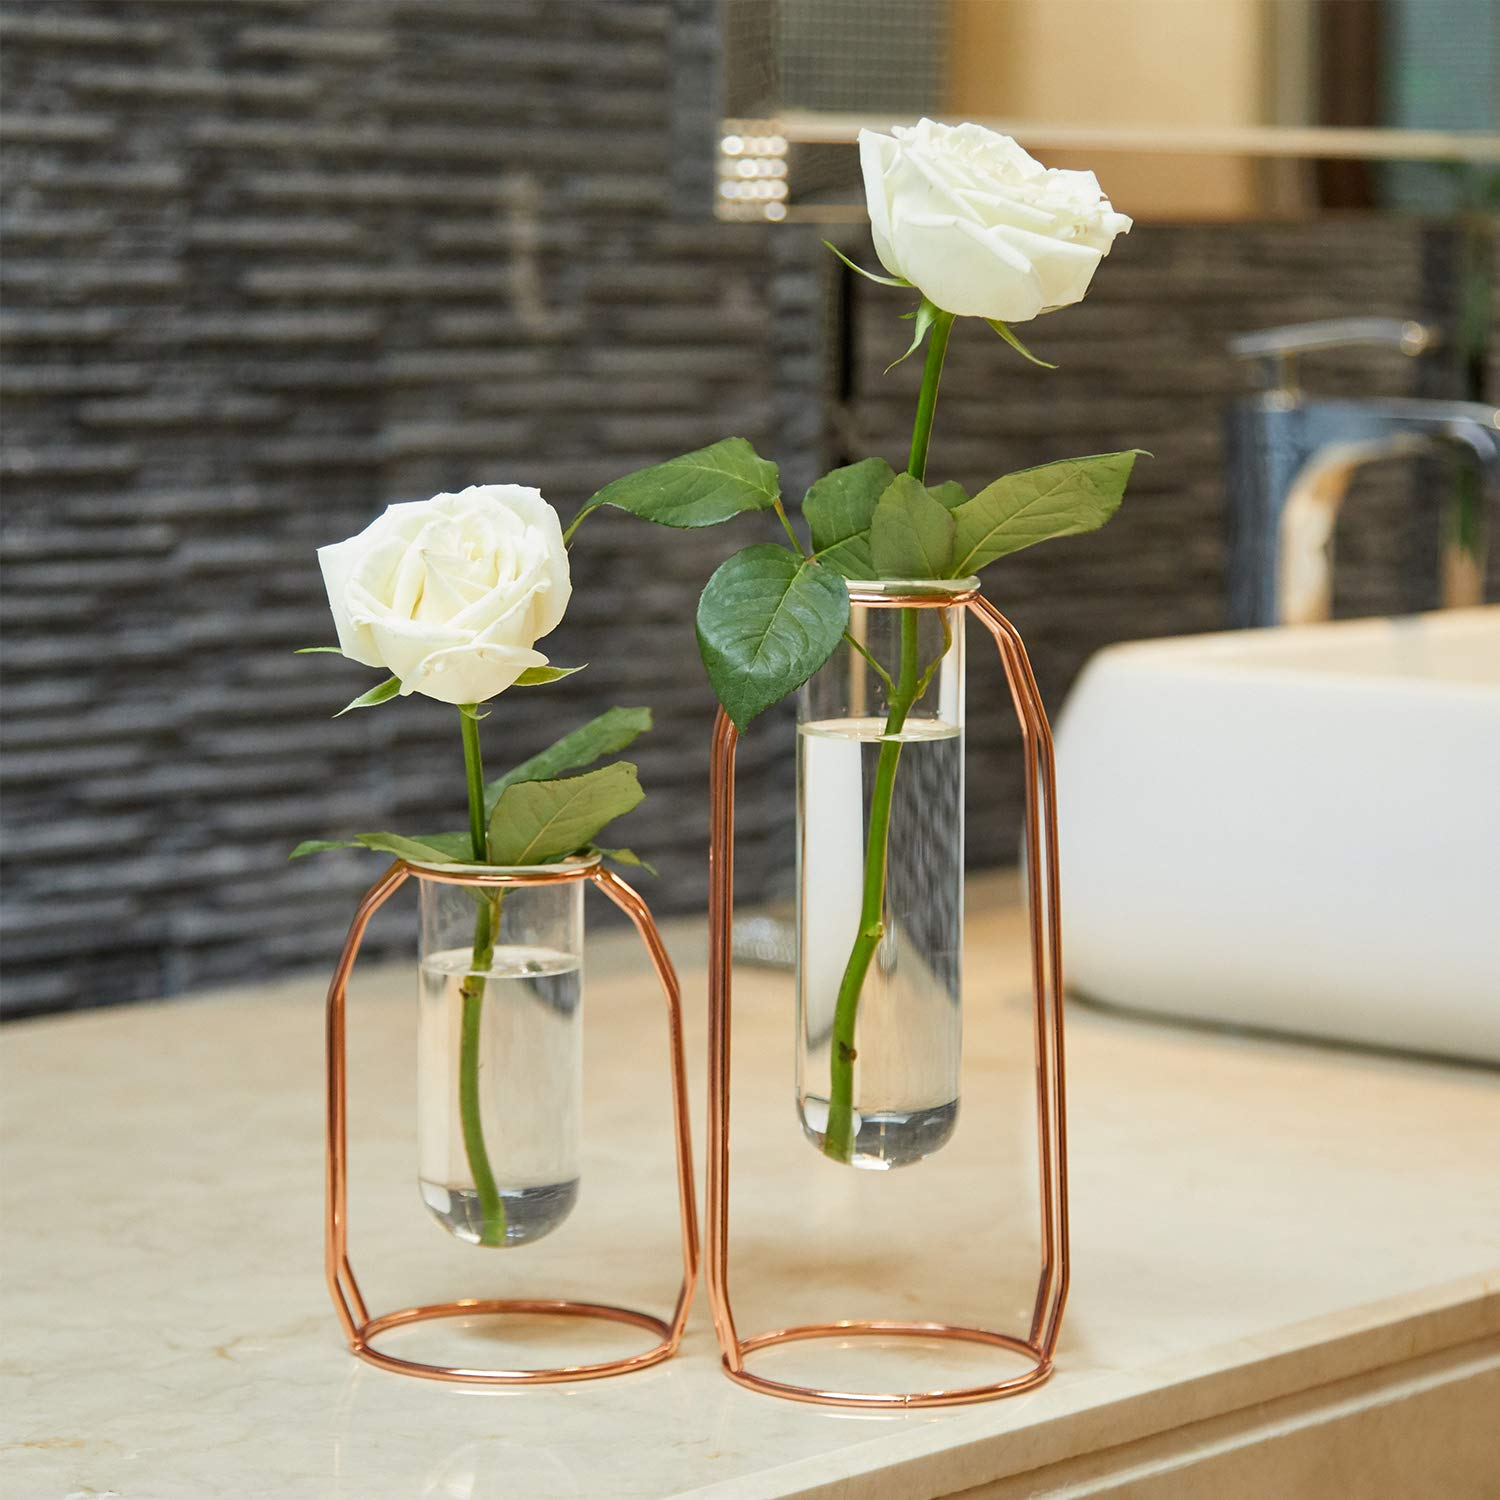 Amazon.com & PuTwo Vases Set of 2 Metal Flower Vase Glass Vase Planter Terrariums Gold Vases Rose Gold Vase Plant Vase Glass Vases Cylinder Vase Vases for Decor ...